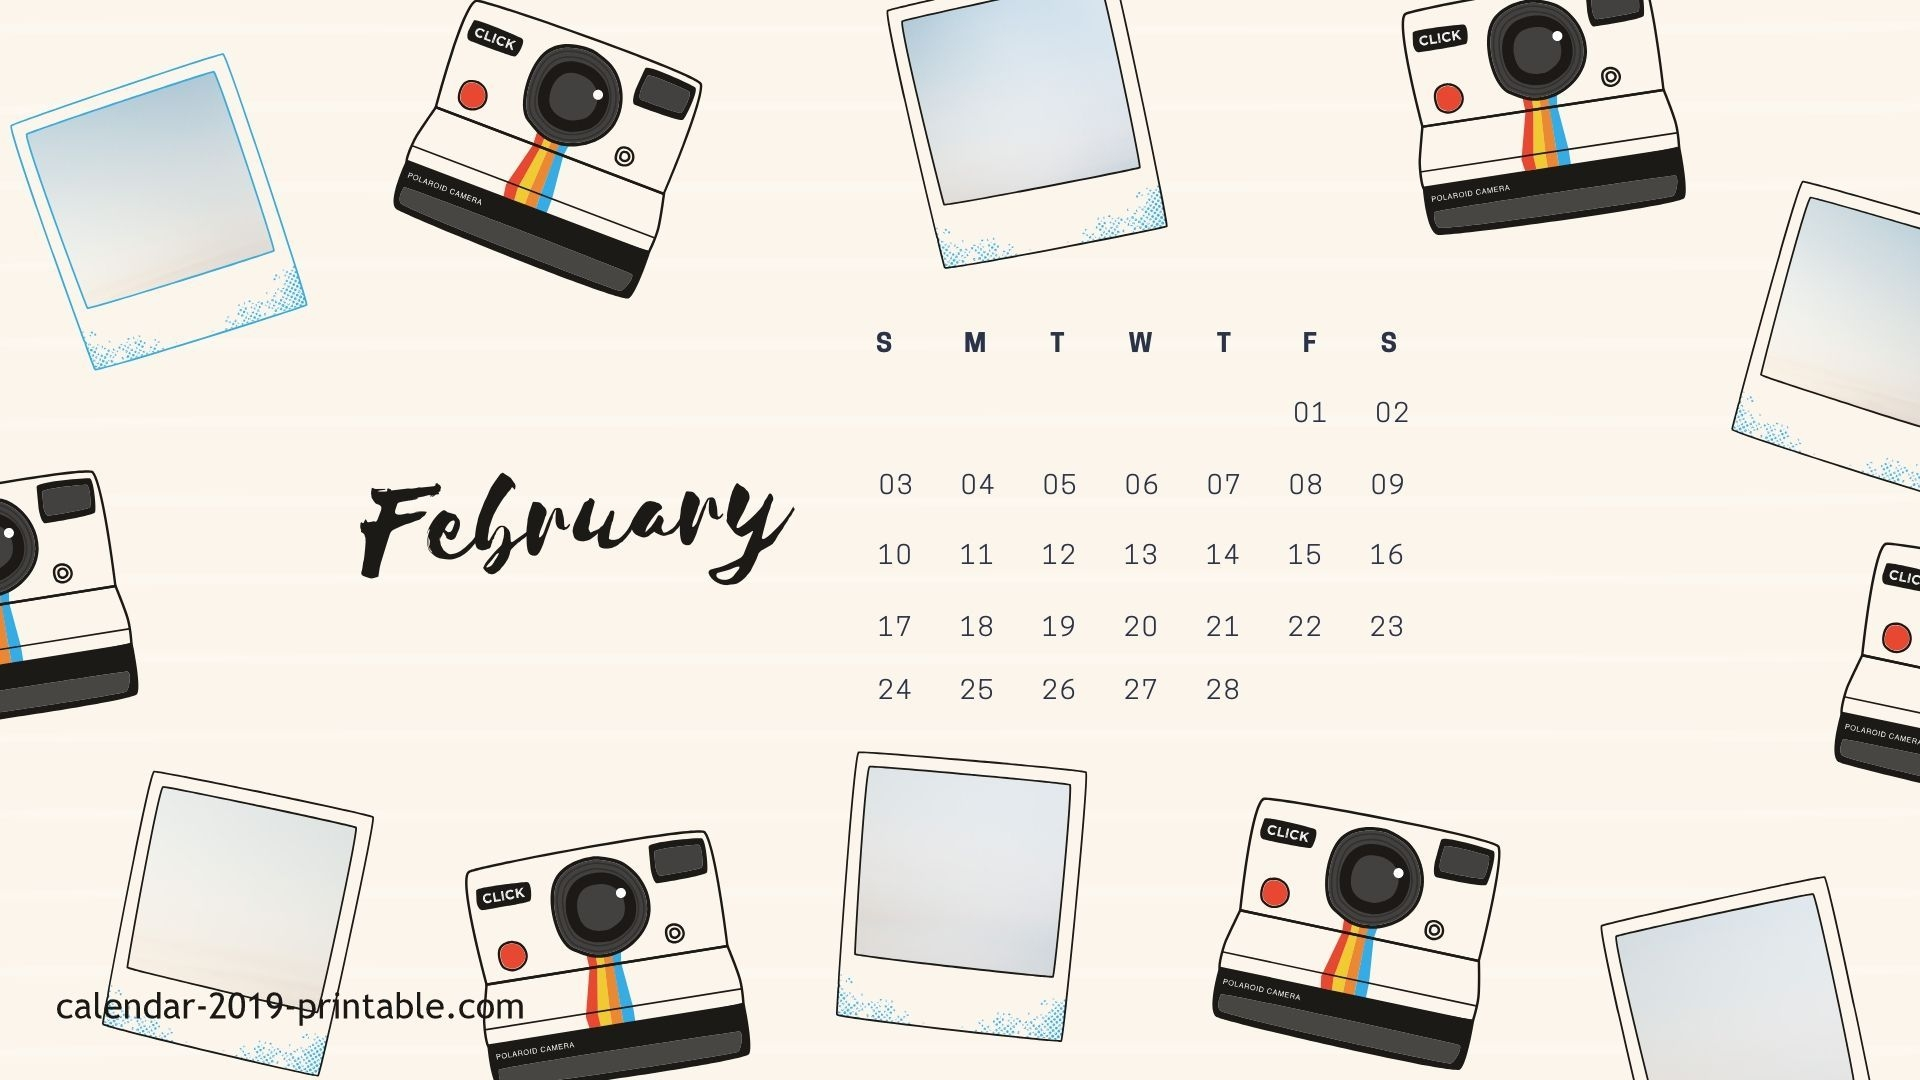 february 2019 calendar desktop wallpapers calendar 2019 printable::February 2019 iPhone Calendar Wallpaper